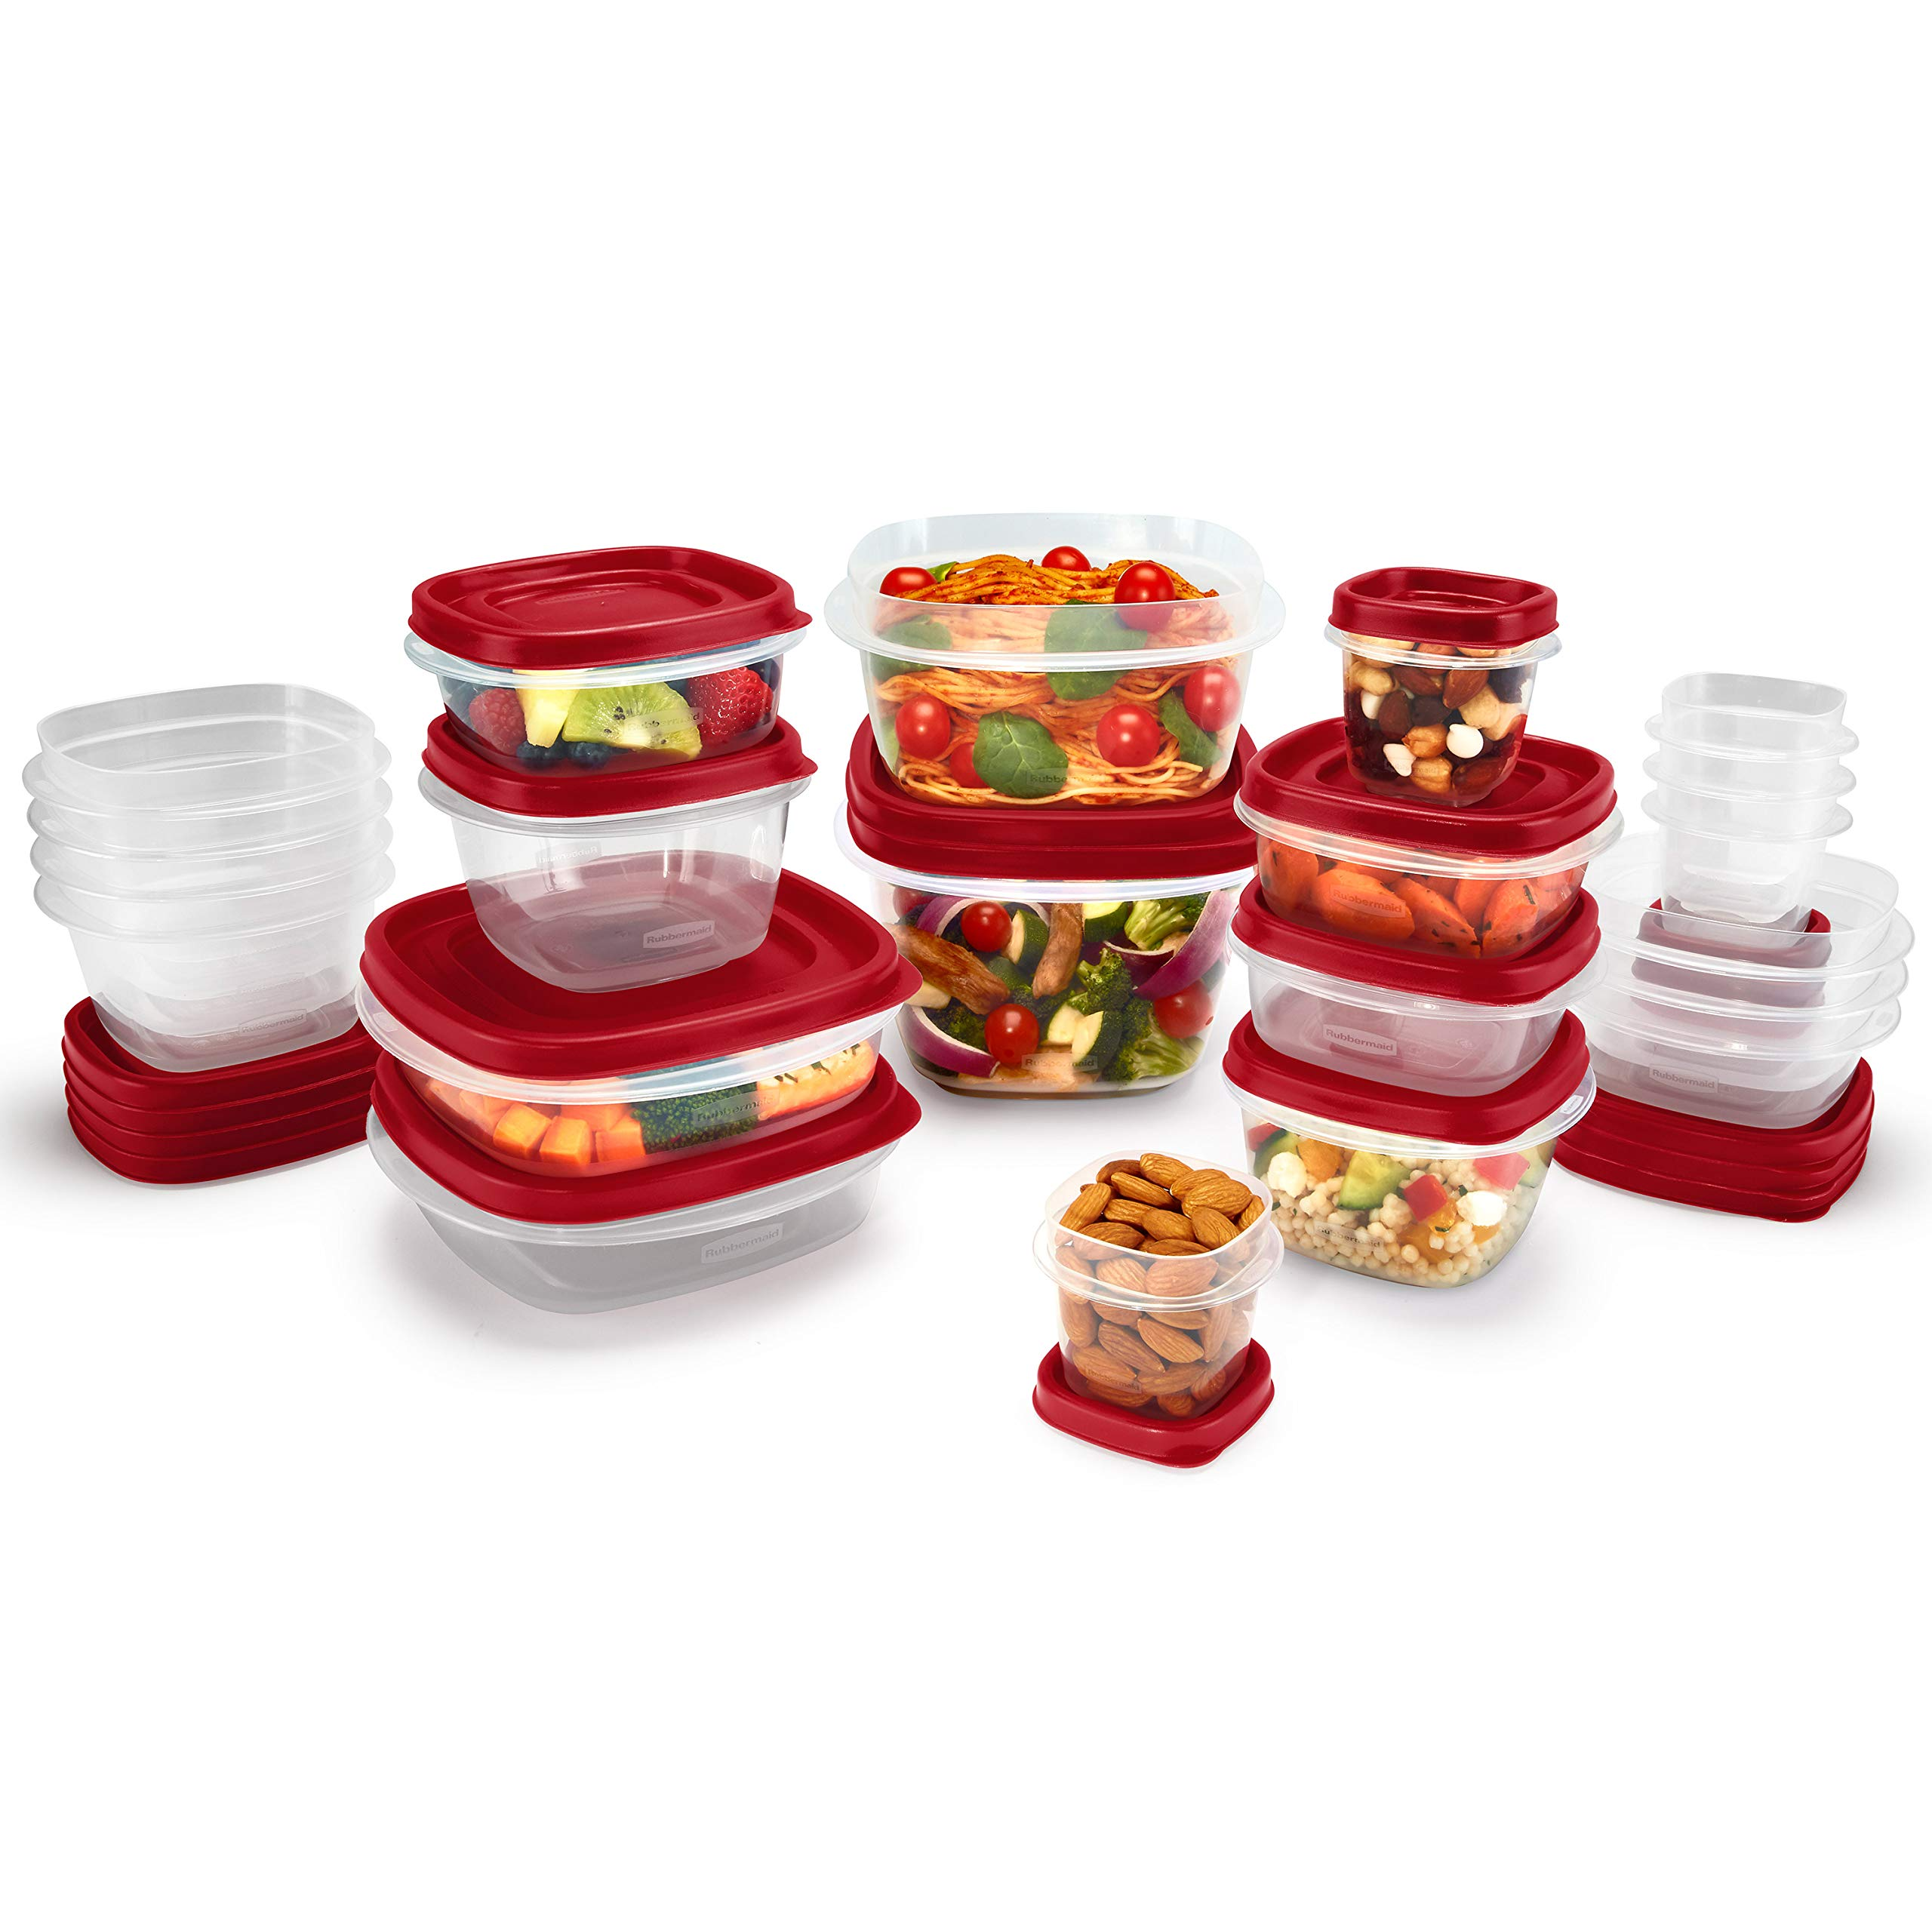 Rubbermaid 2063704 Easy Find Vented Lids Food Storage Container, 42pc New, Racer Red by Rubbermaid (Image #2)